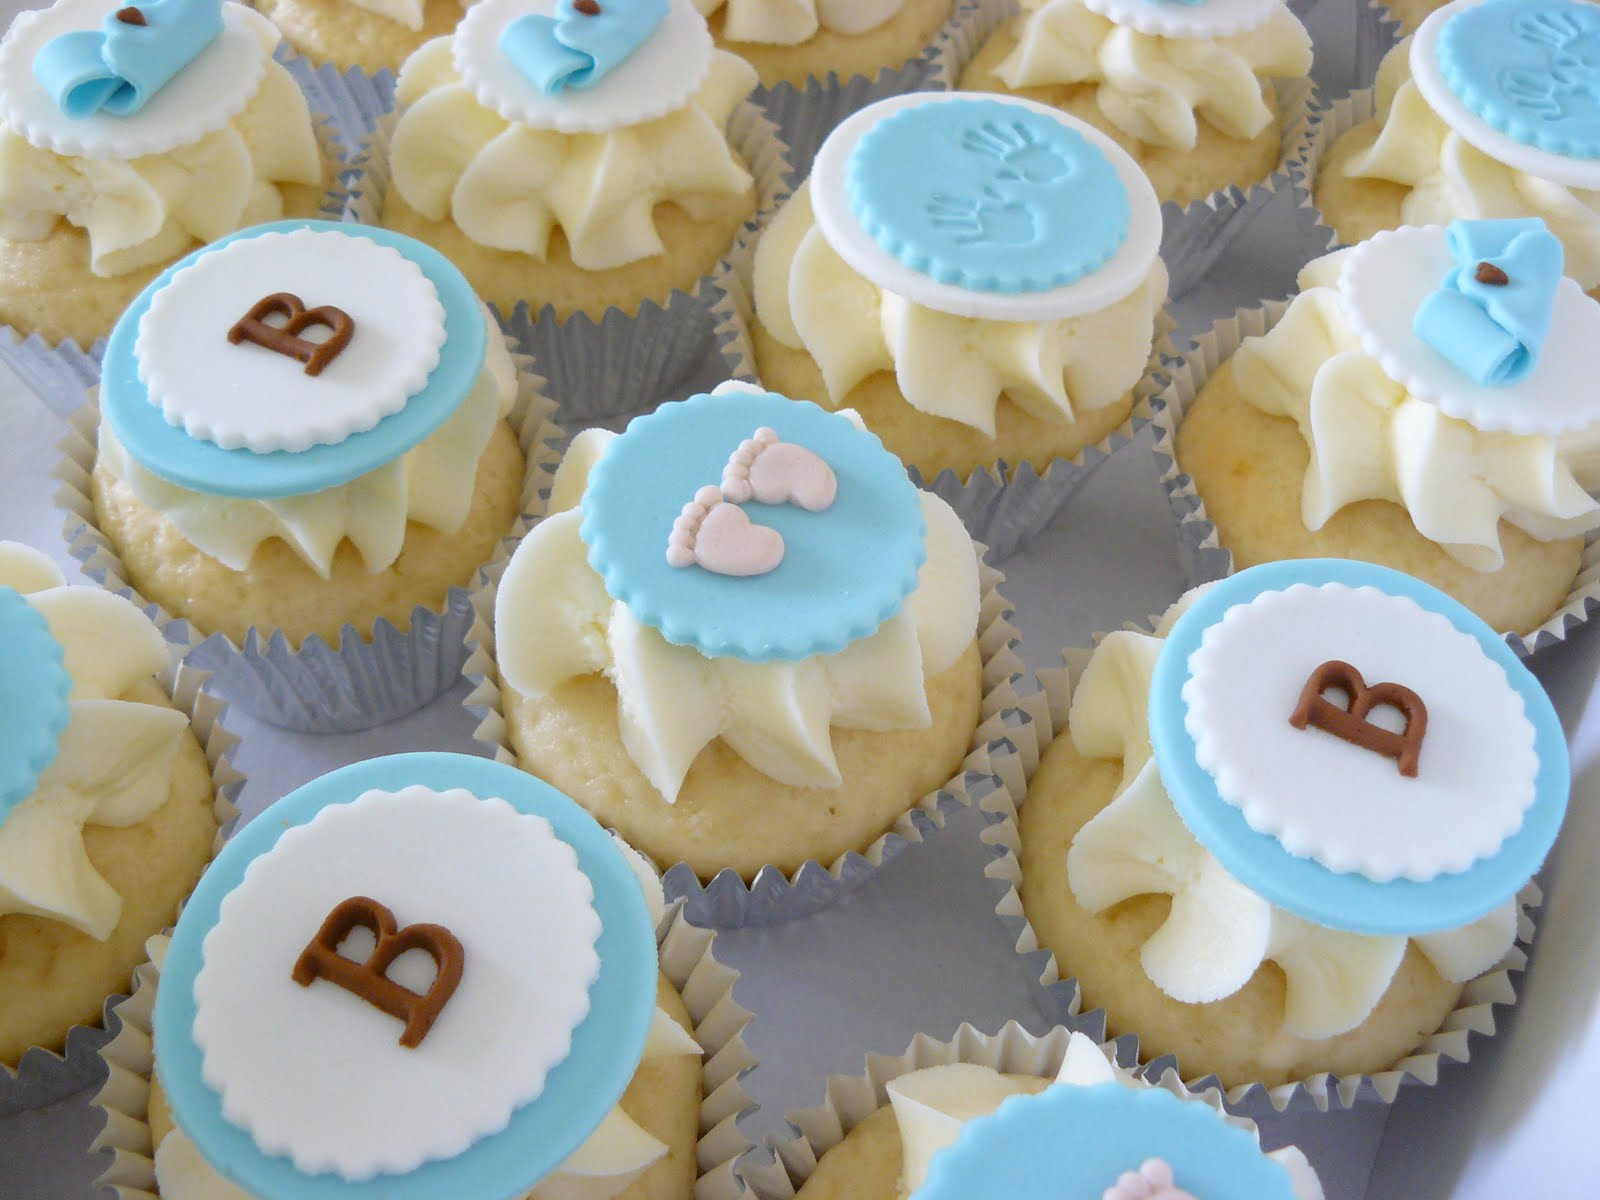 Decorating Baby Shower Cupcakes 70 baby shower cakes and cupcakes ideas